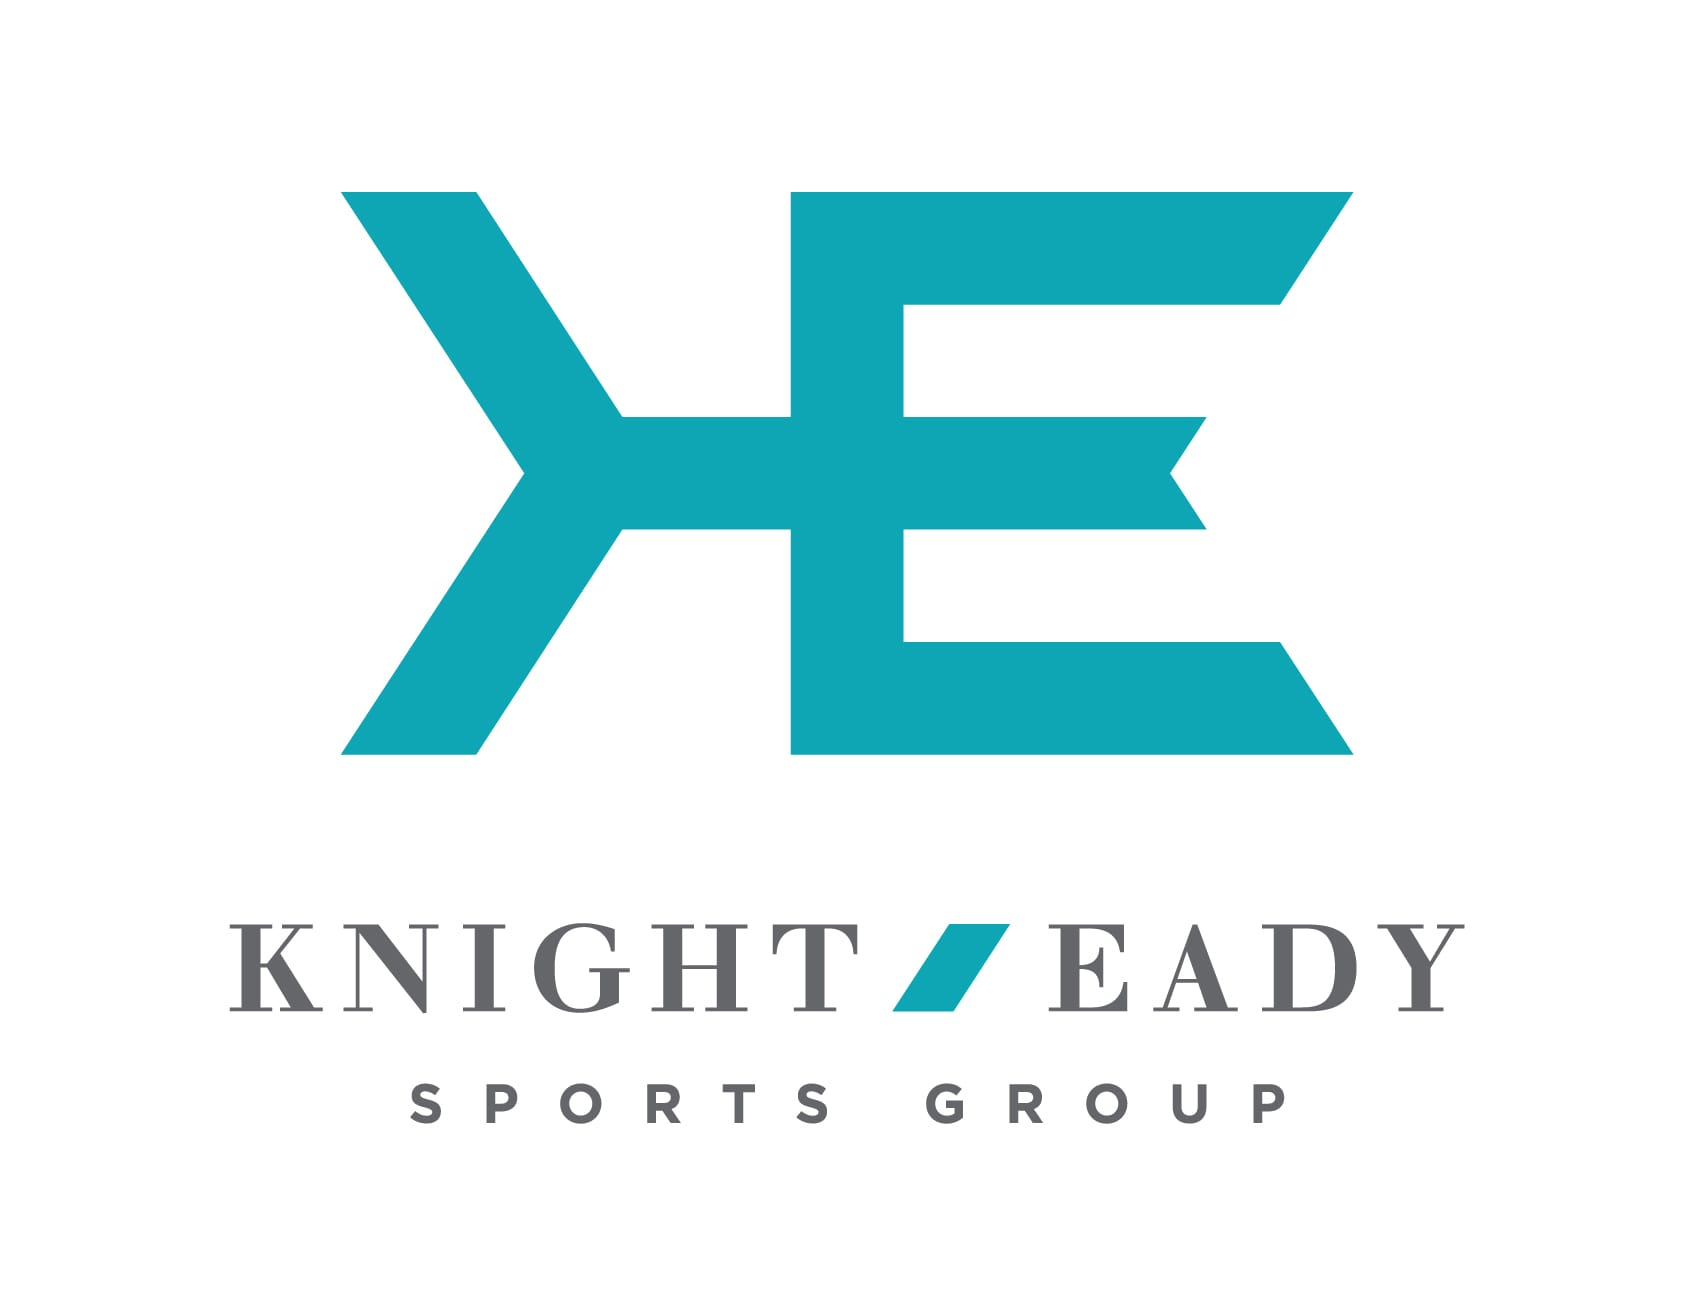 Knight Eady Sports Group logo